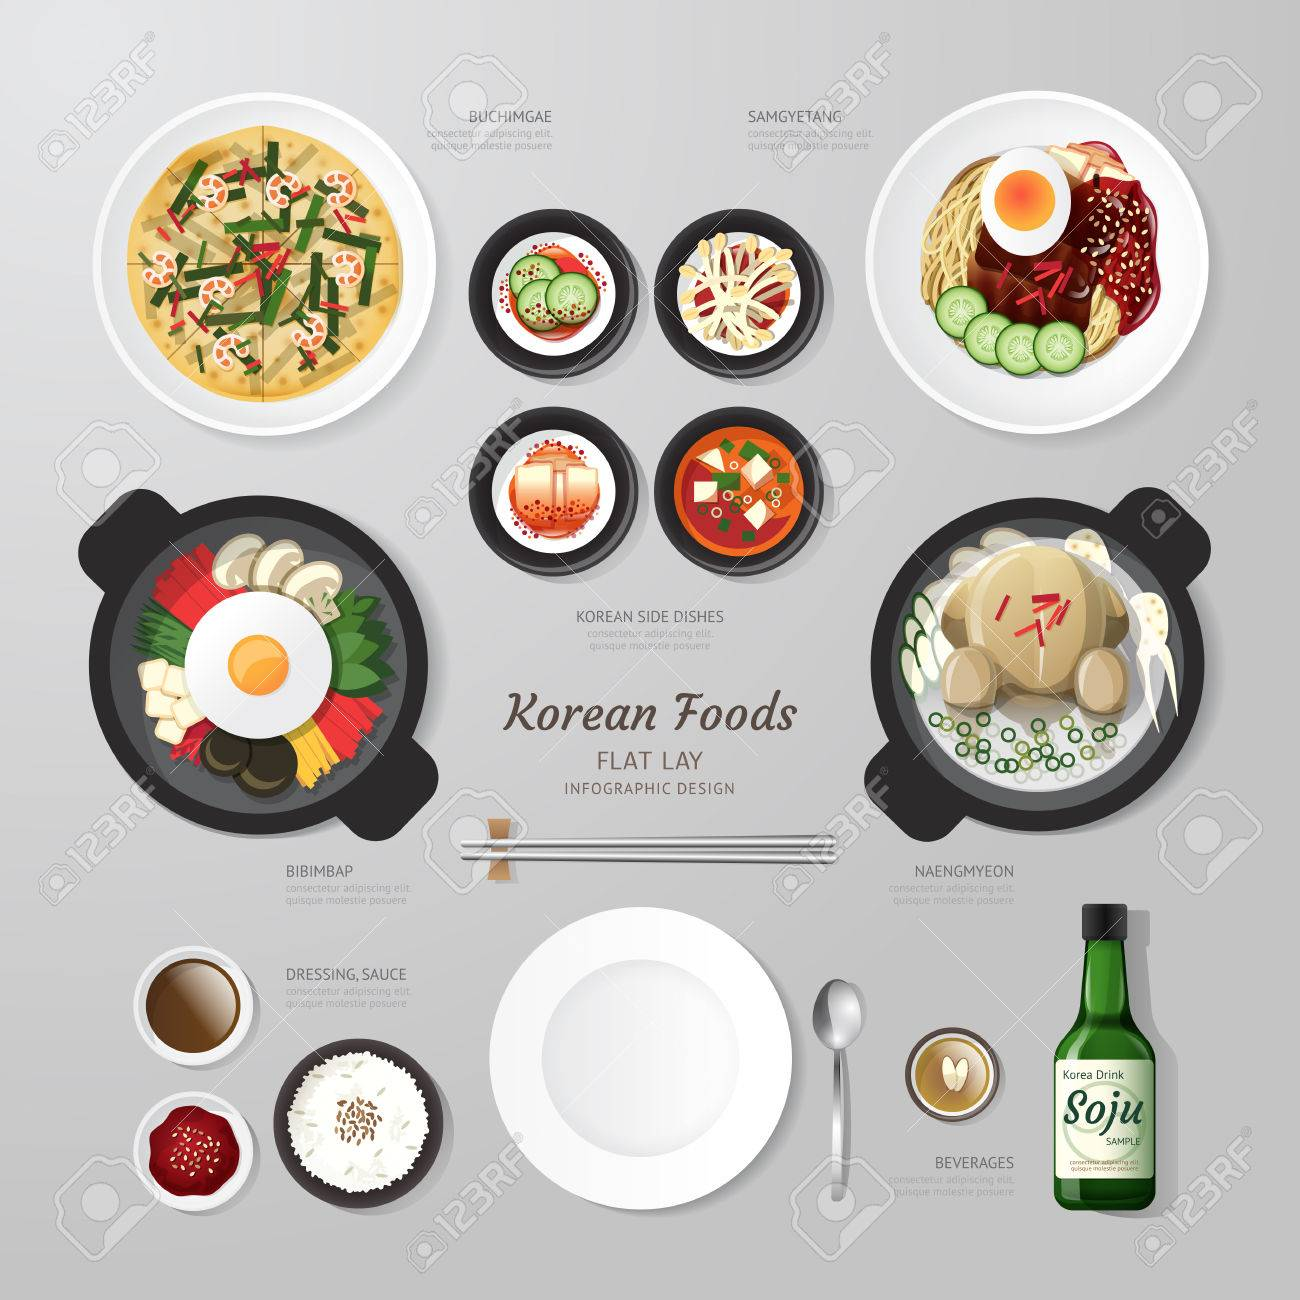 Infographic Korea foods business flat lay idea. Vector illustration hipster concept.can be used for layout, advertising and web design. Standard-Bild - 39264941